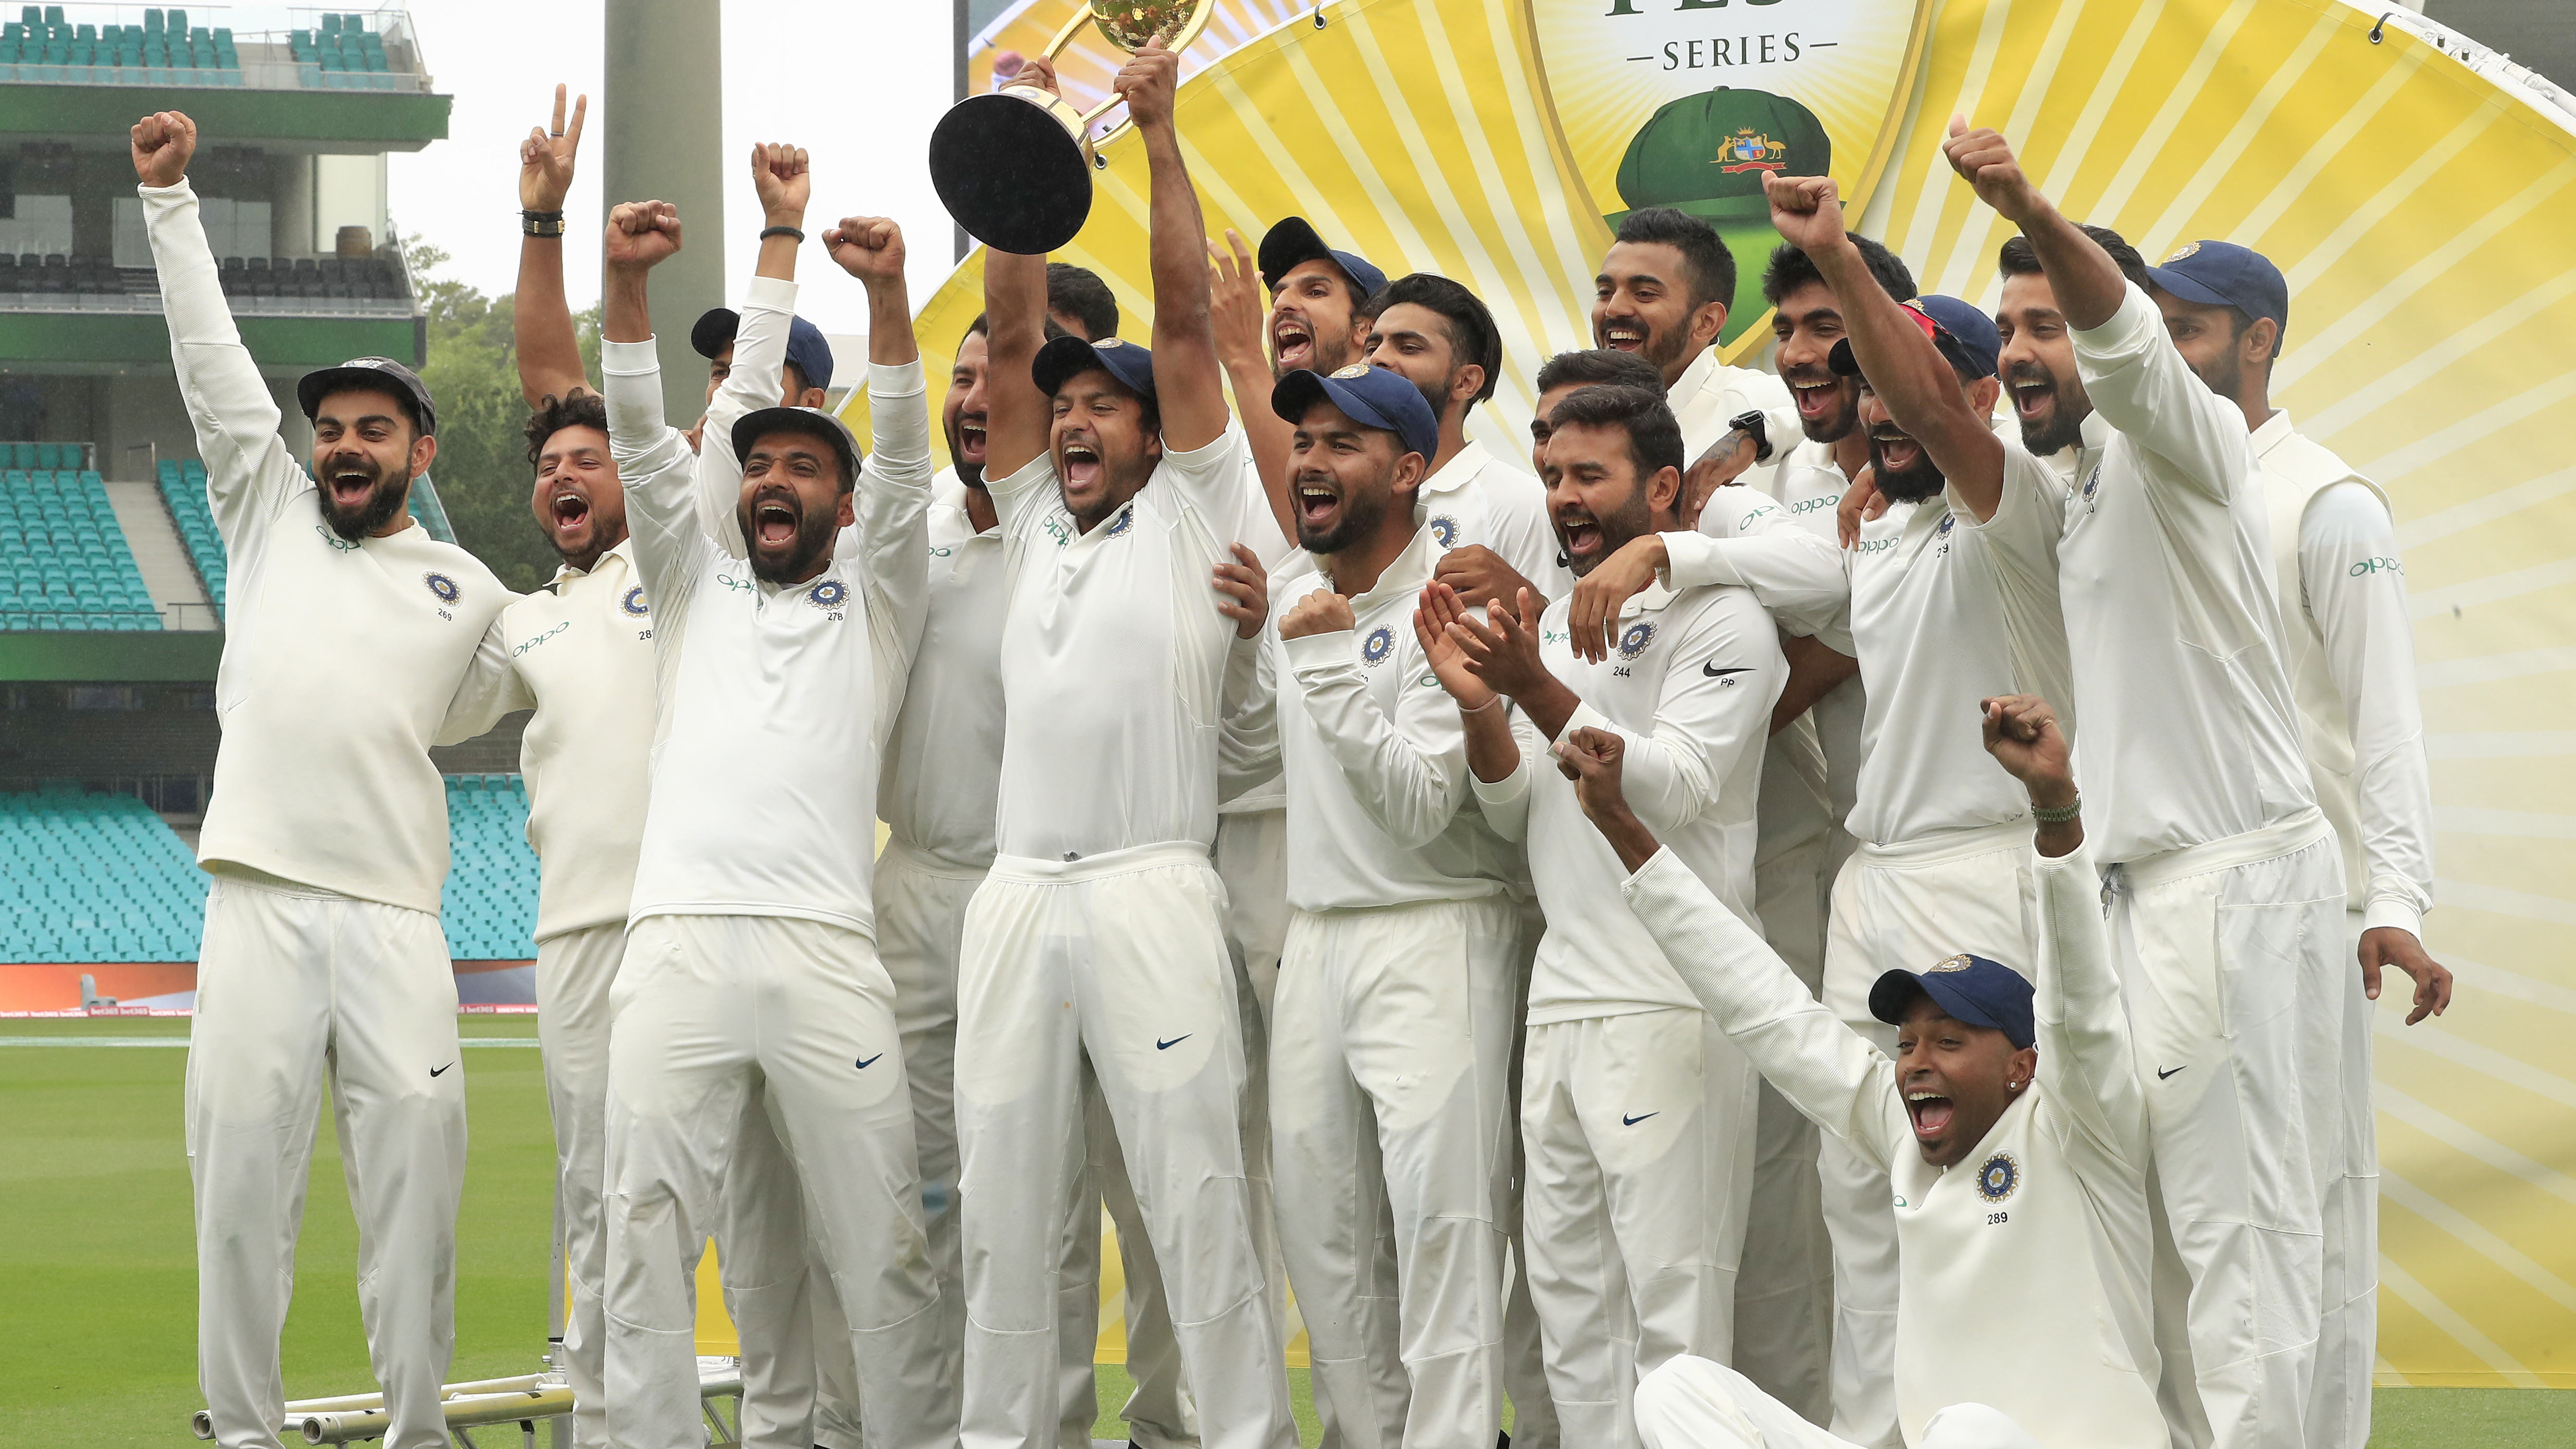 AUS v IND 2018-19: Indian cricket team shares their delight on Twitter after winning a historic Test series in Australia